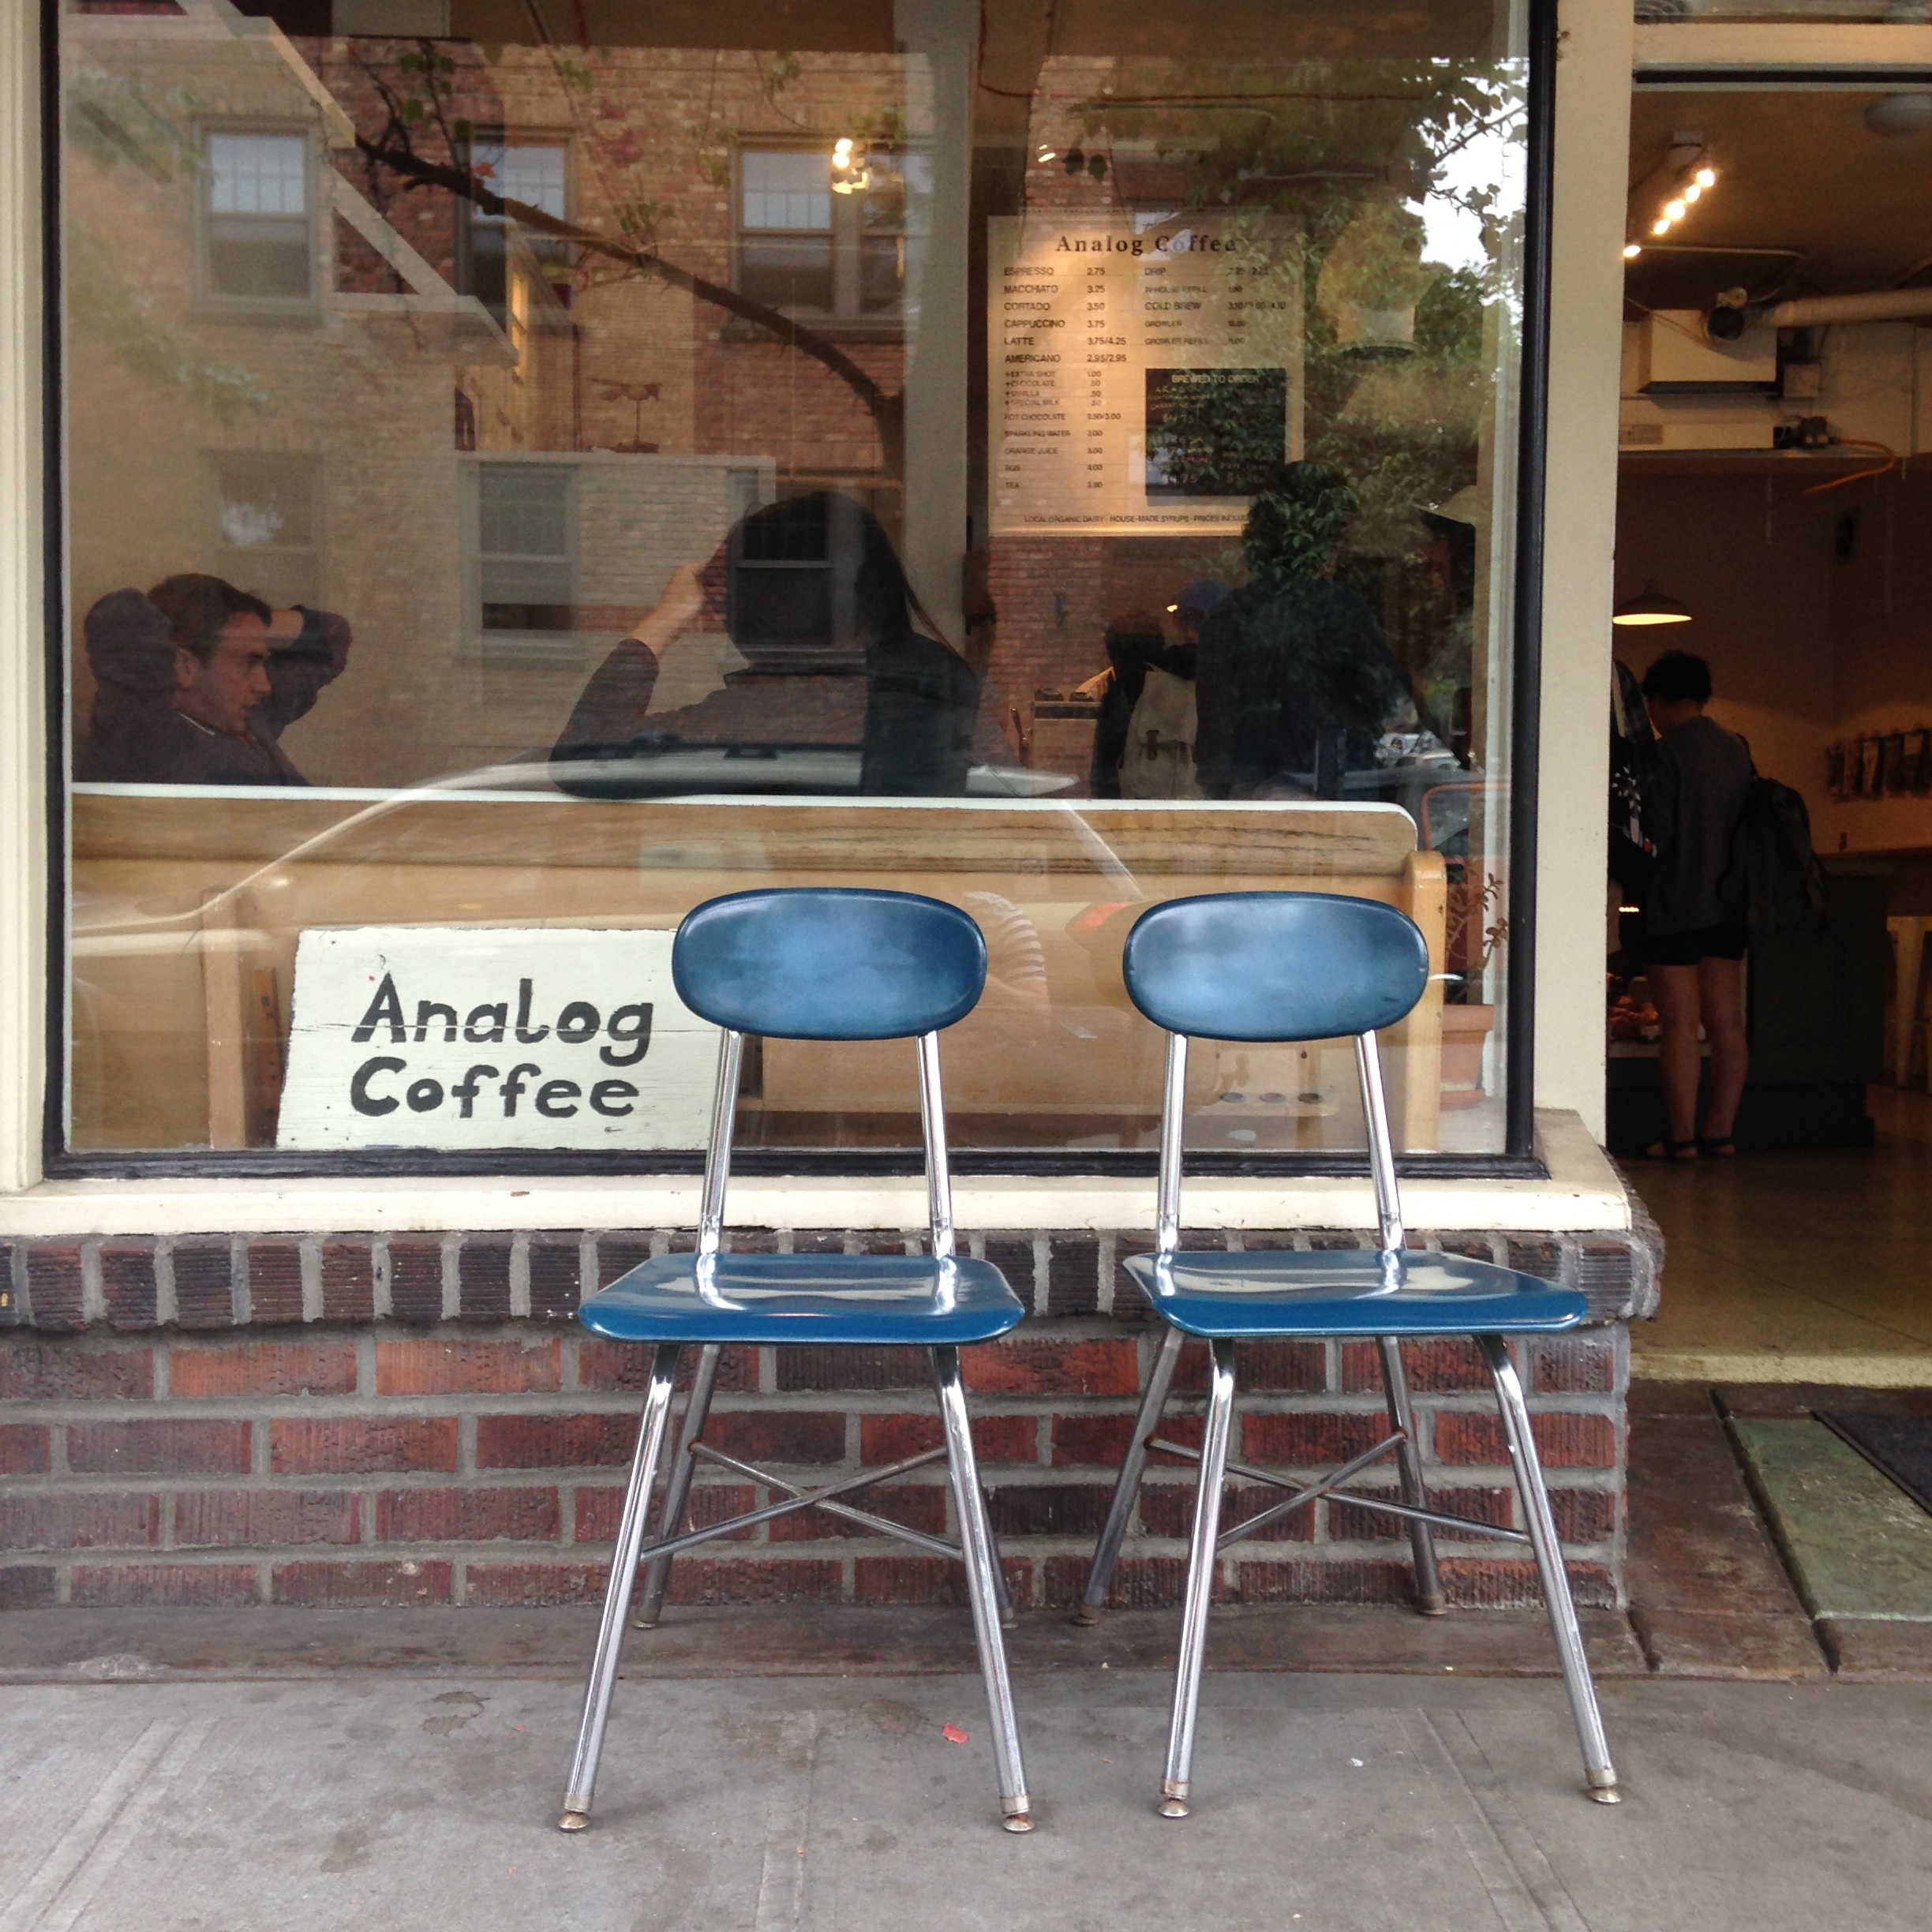 'Drink This: Analogue Coffee' article by Lane